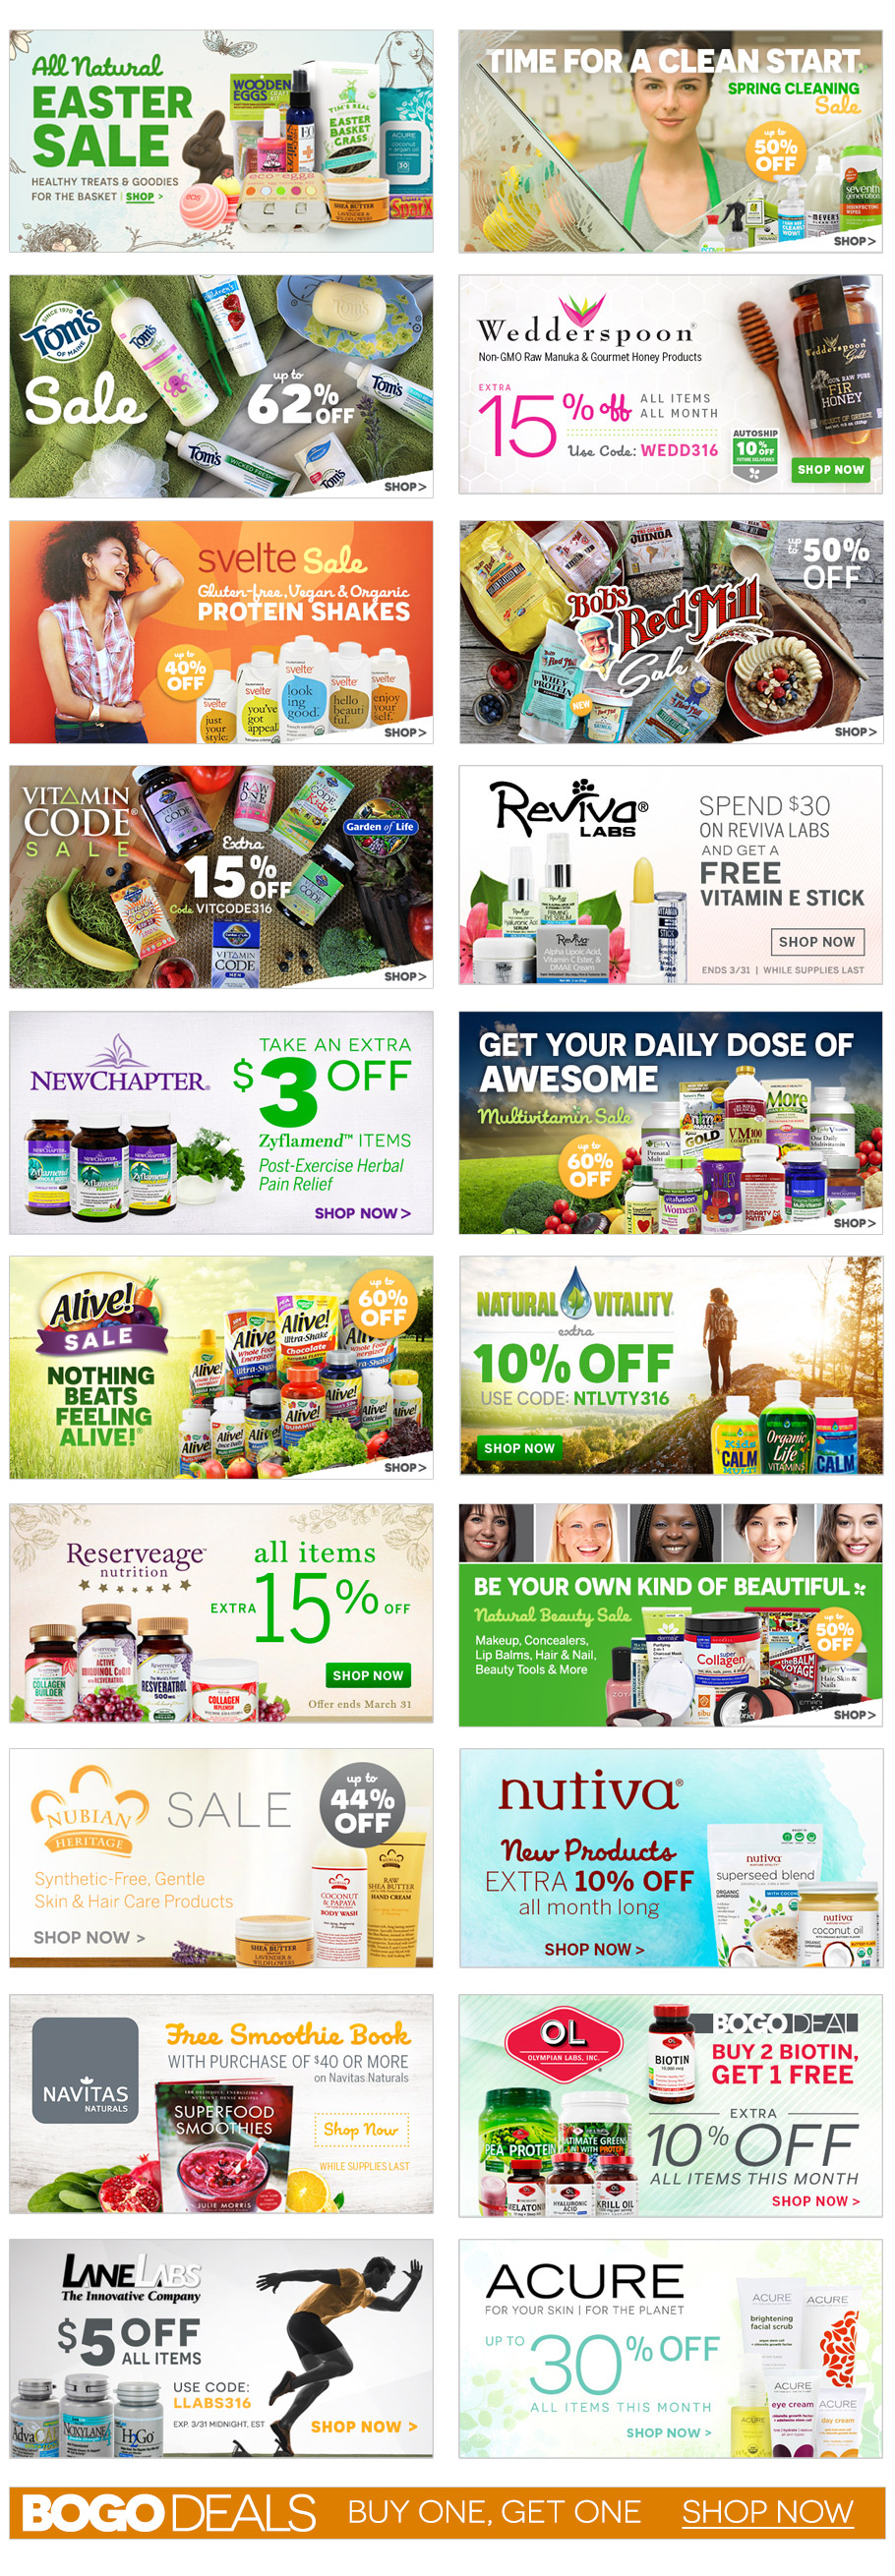 Almased coupons discounts